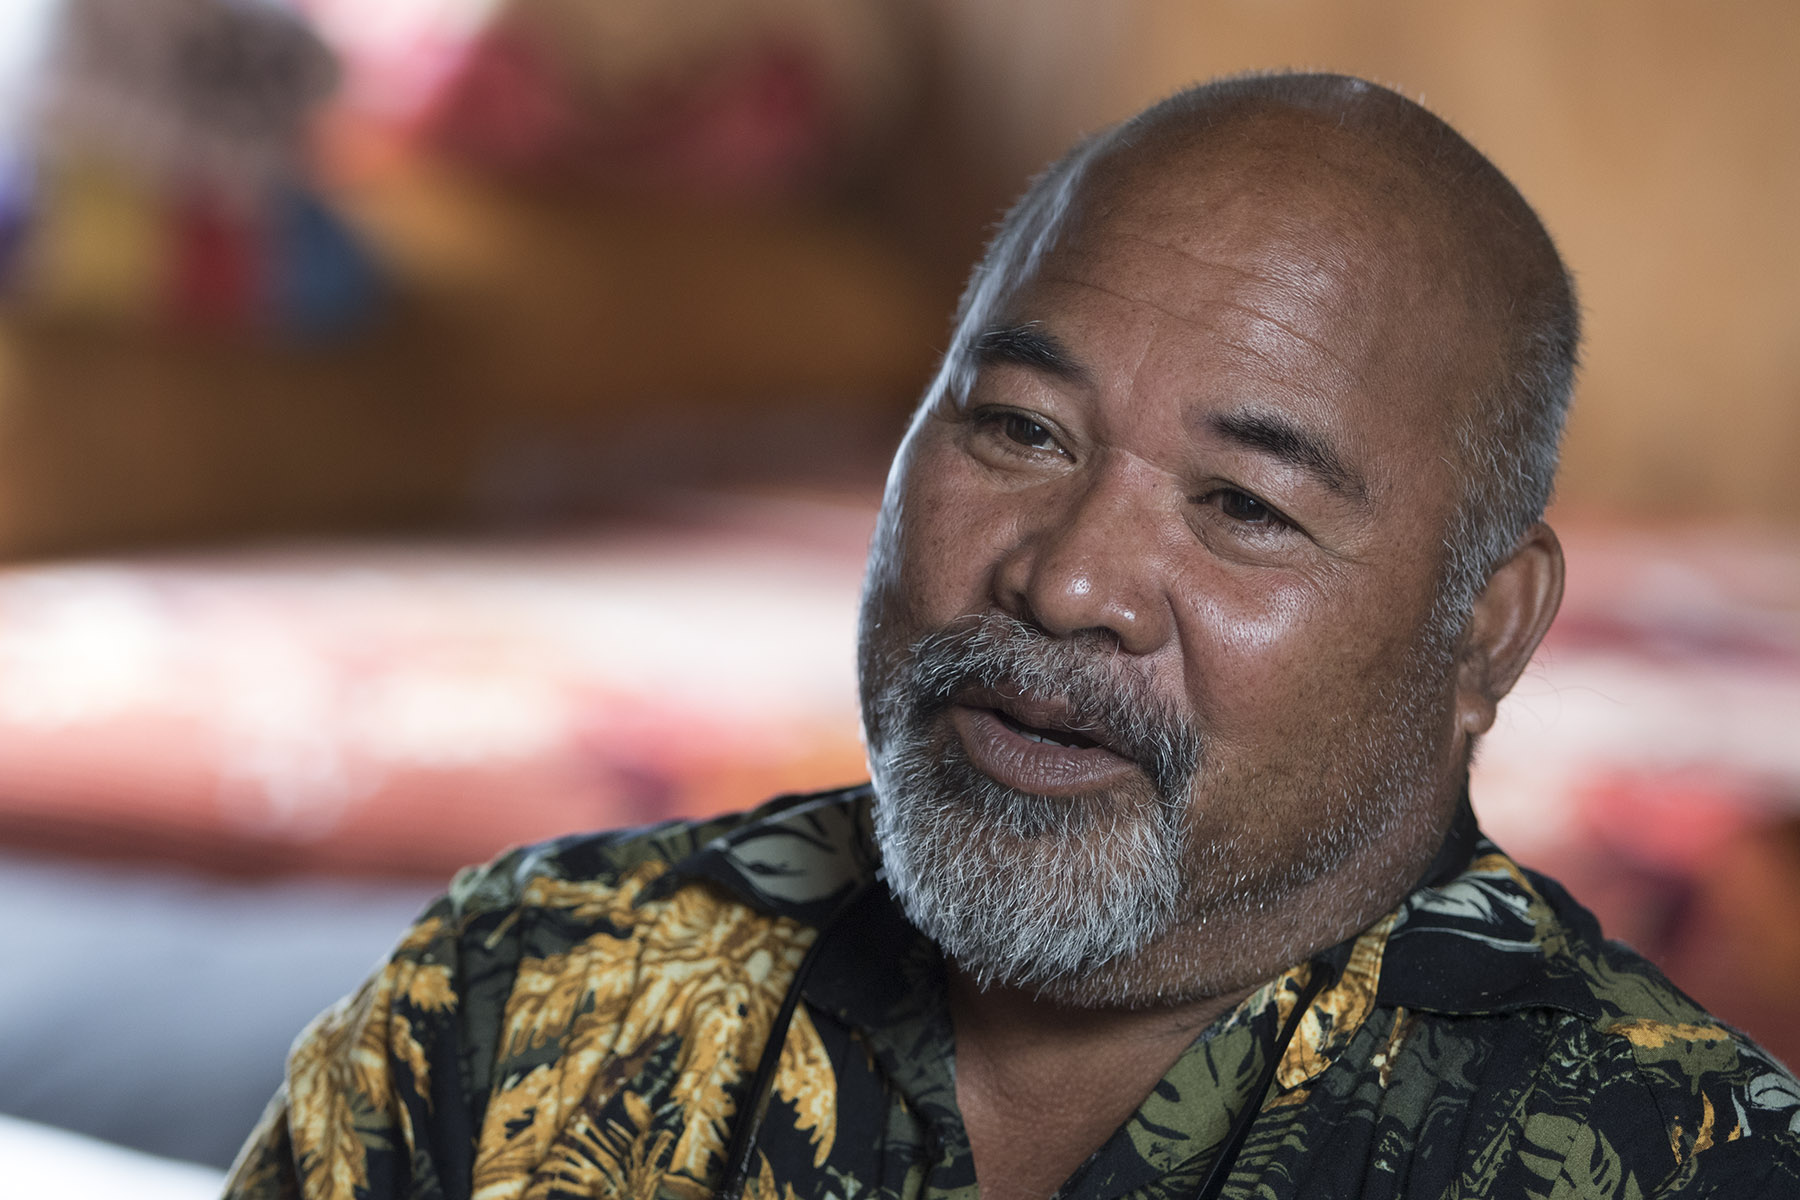 <p>Jonithen Jackson has lived in Hawaii for almost 25 years, but is running for the mayor of Enewetak. His home atoll has been largely uninhabitable due to nuclear contamination.</p>